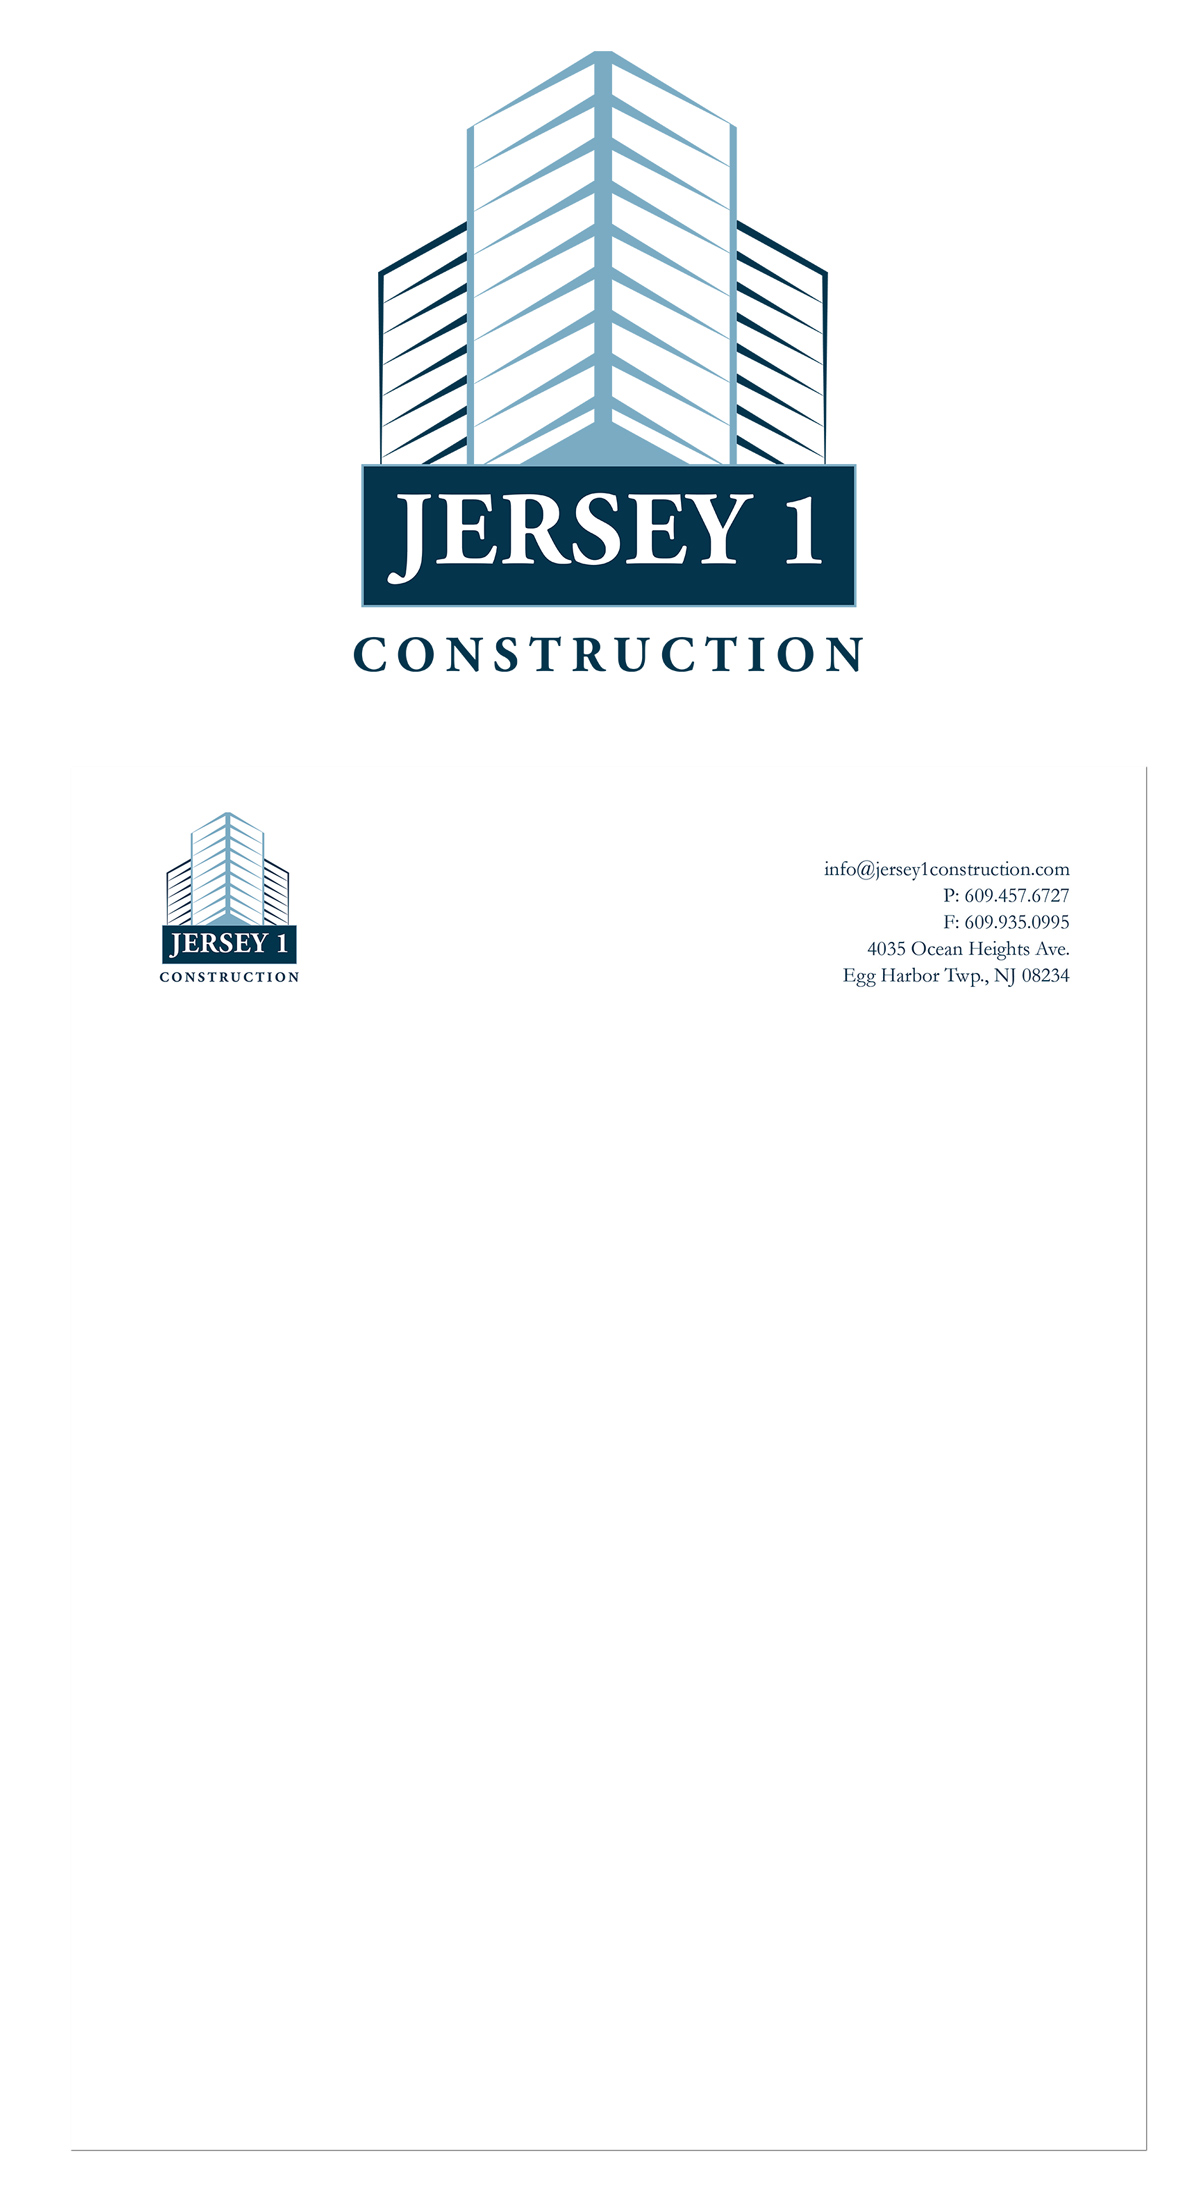 nj union construction logo jersey 1 construction